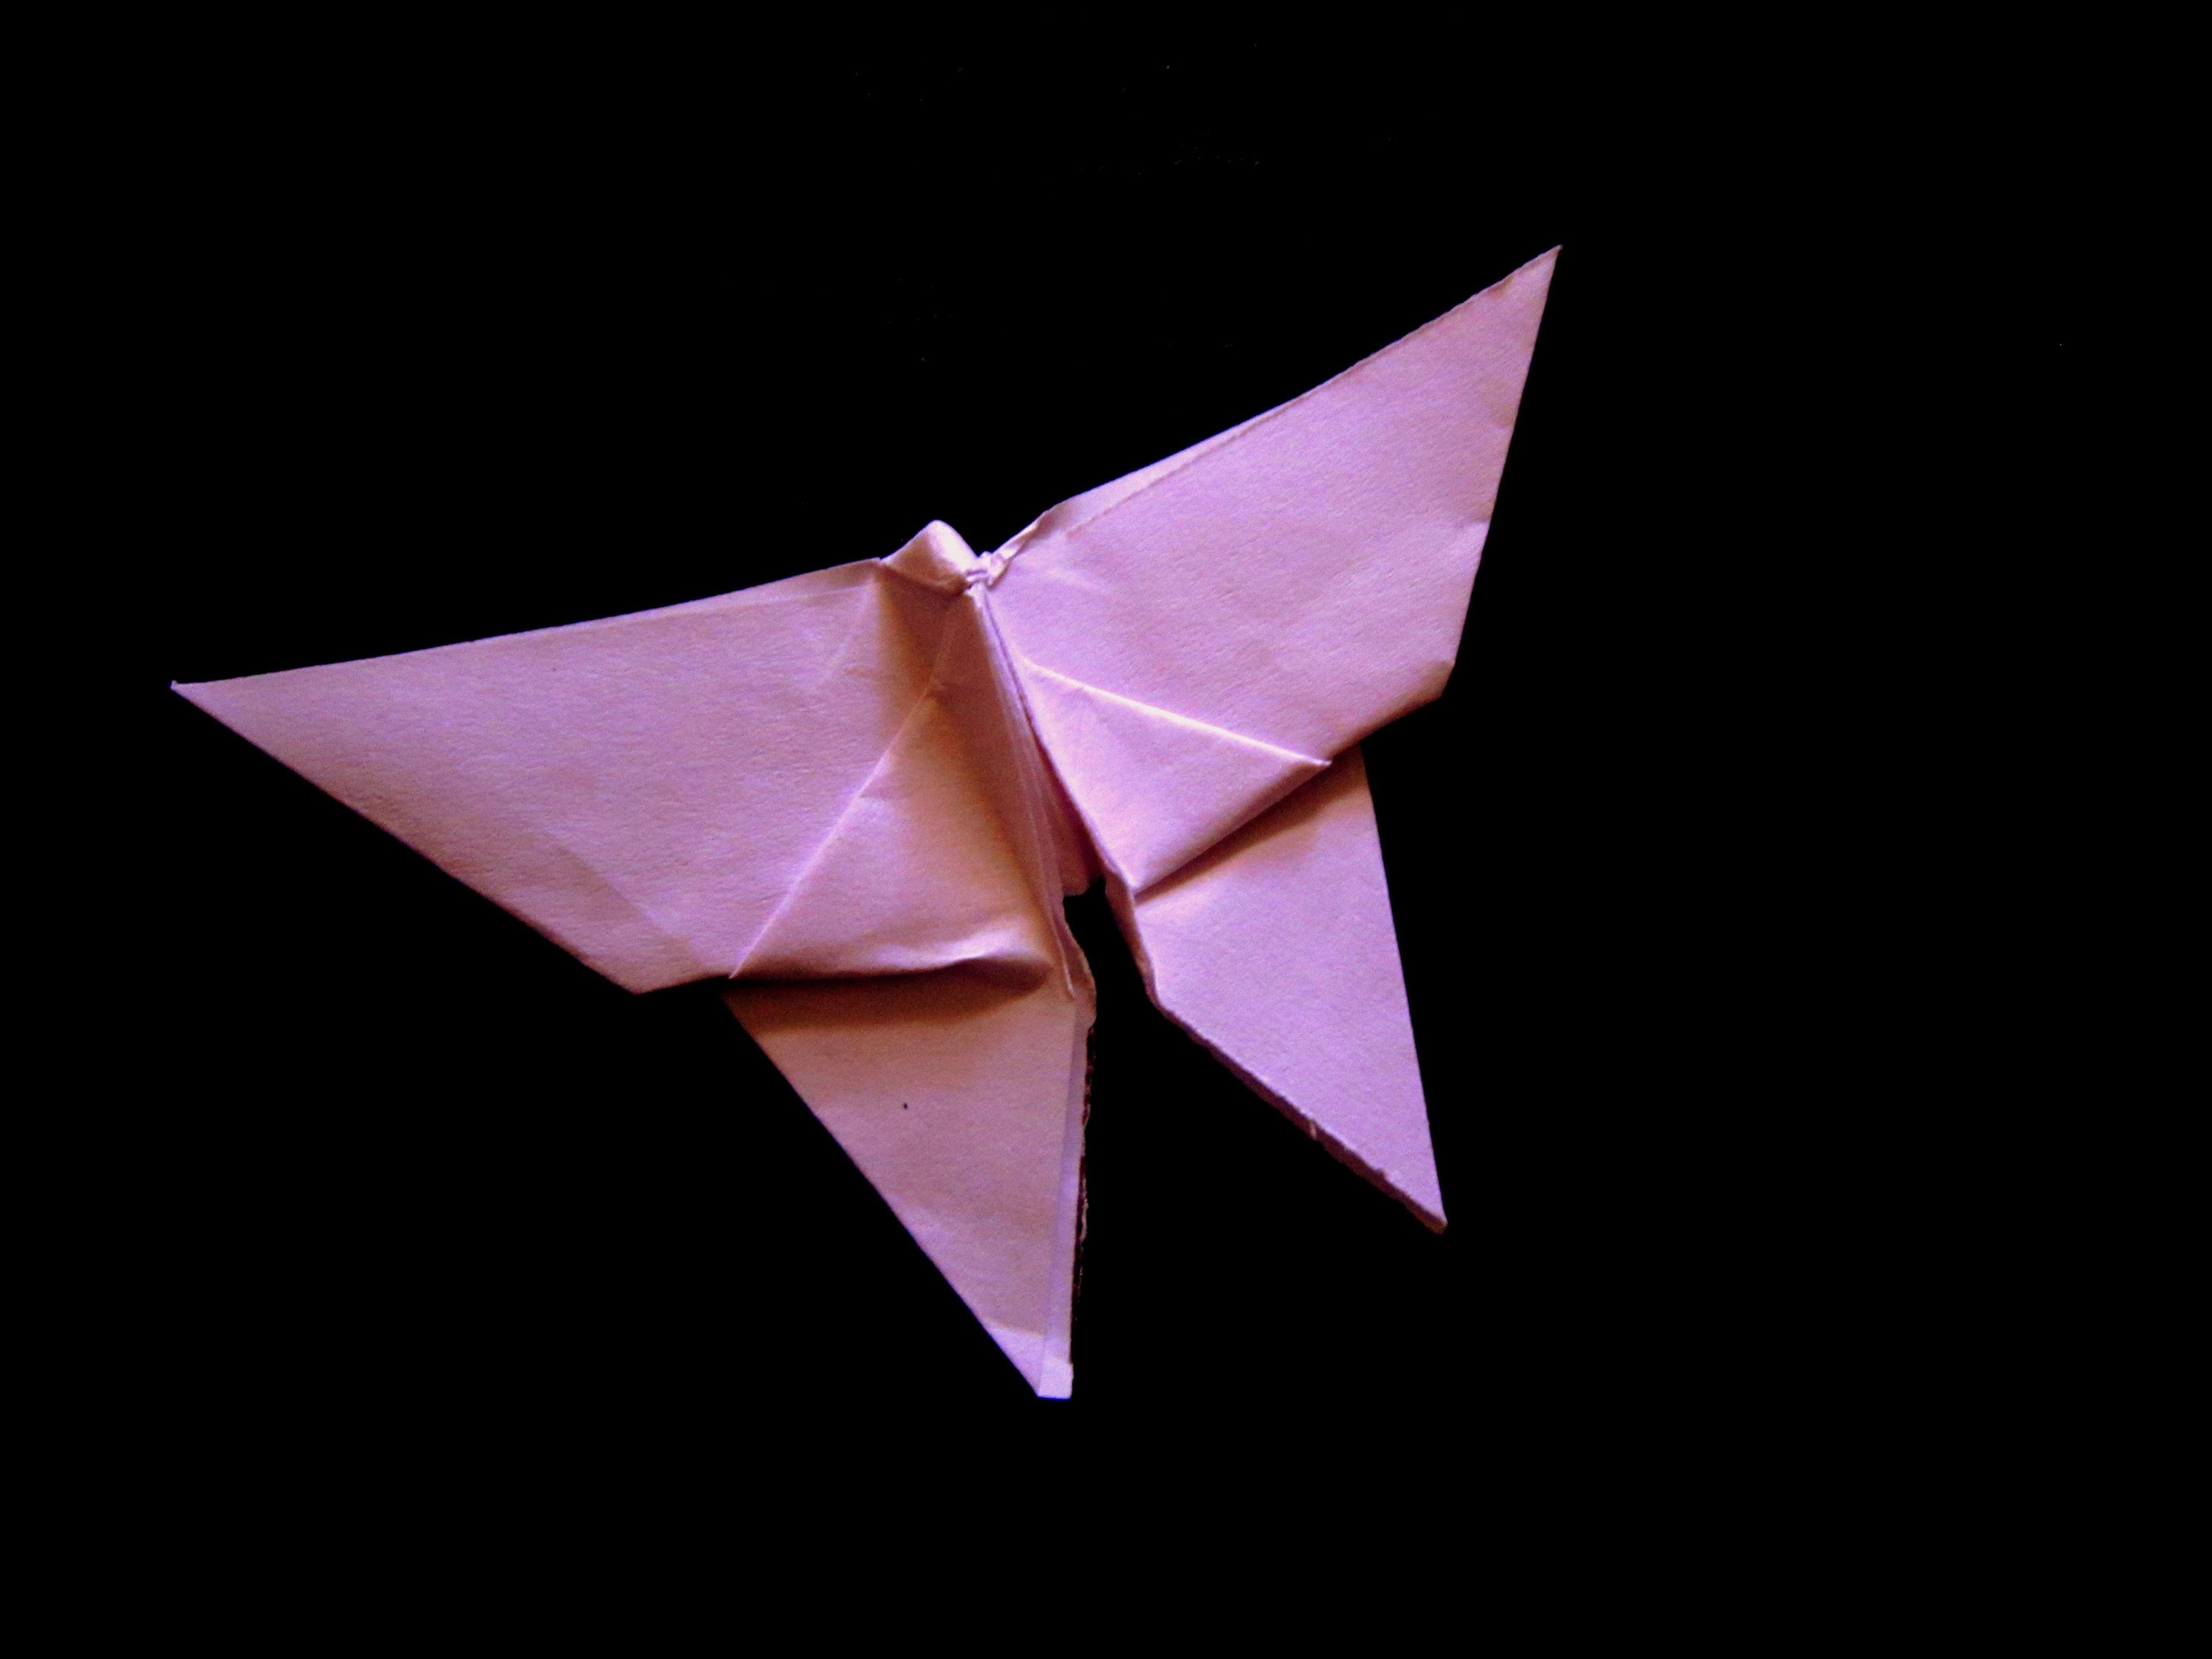 Making of an Origami butterfly